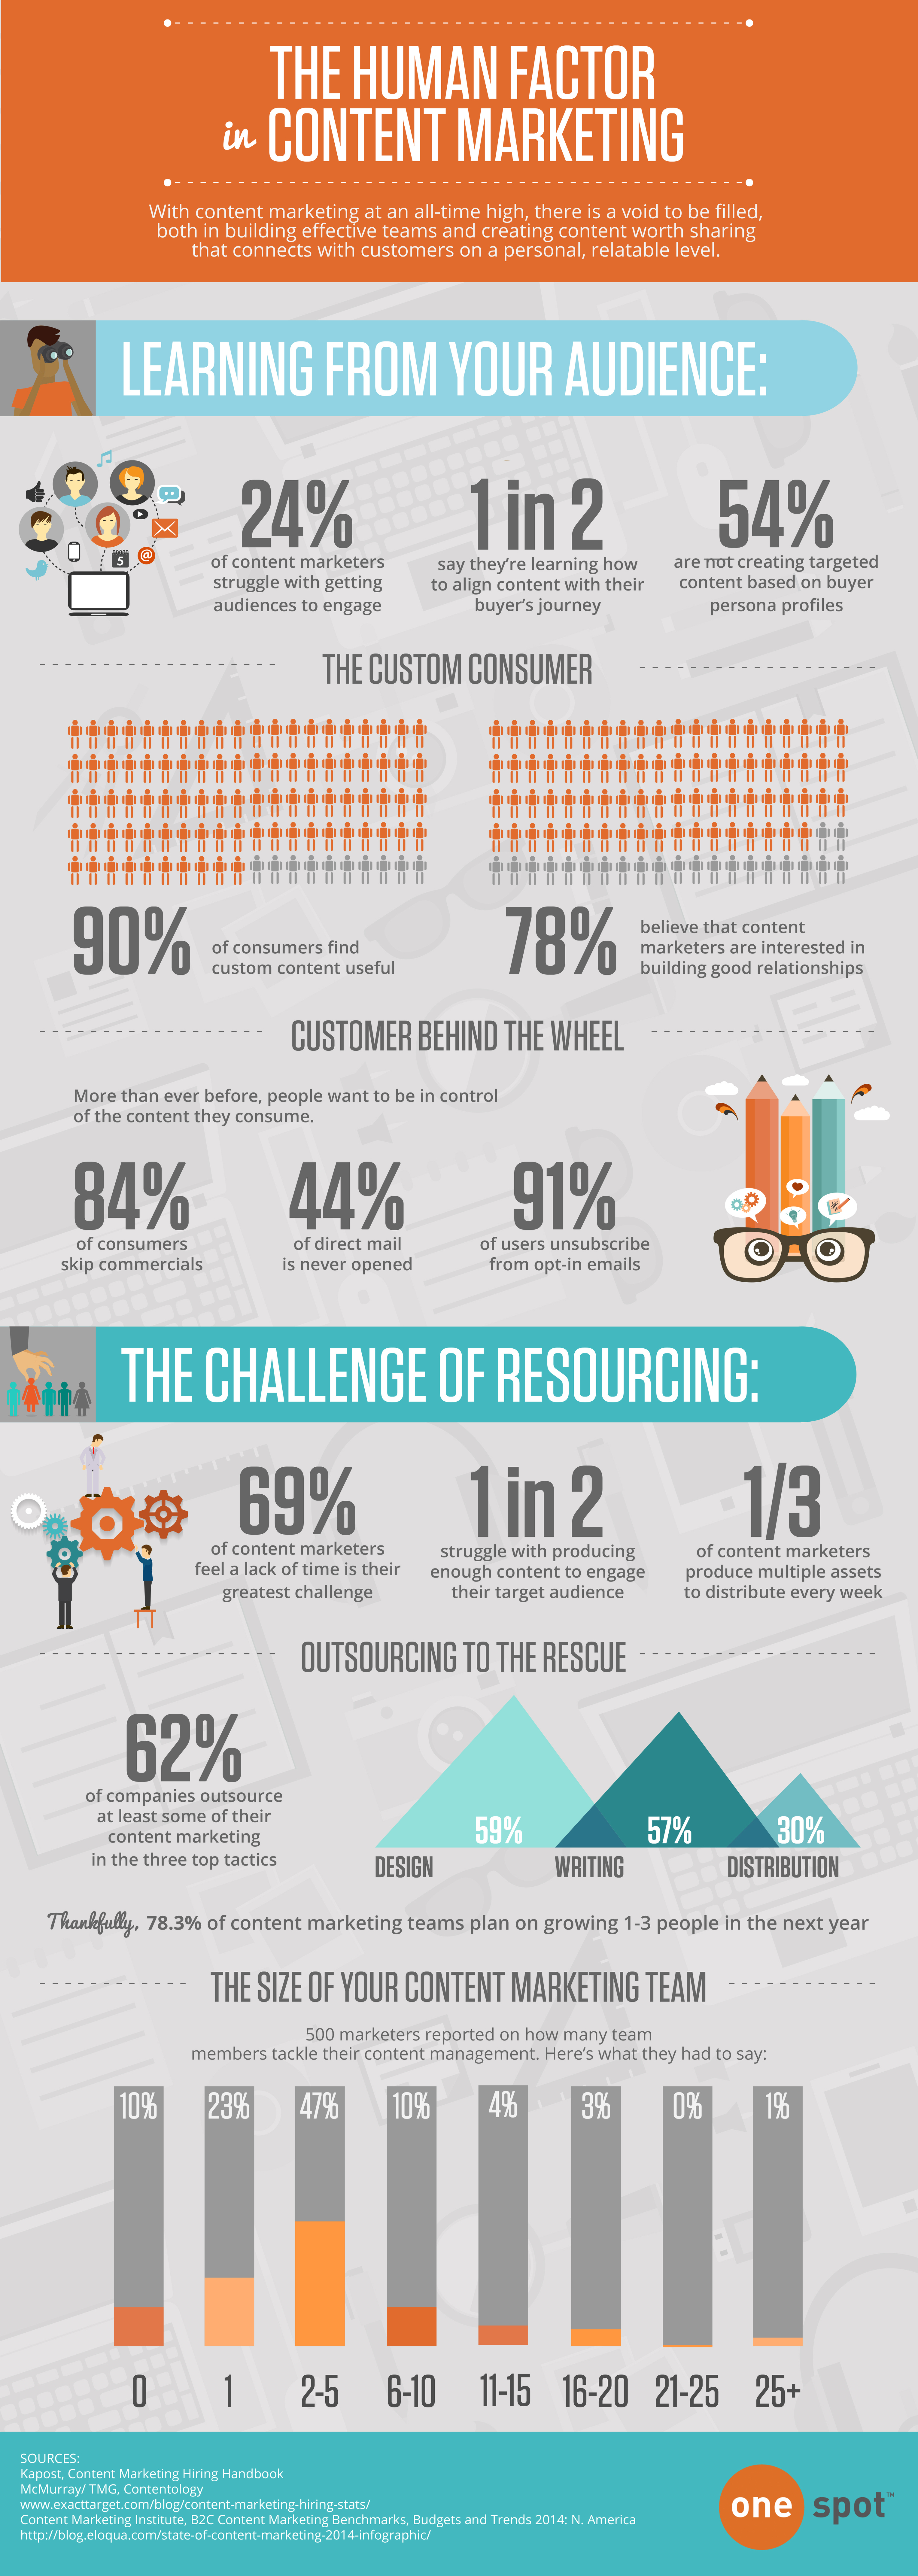 INFOGRAPHIC: The Human Factor in Content Marketing